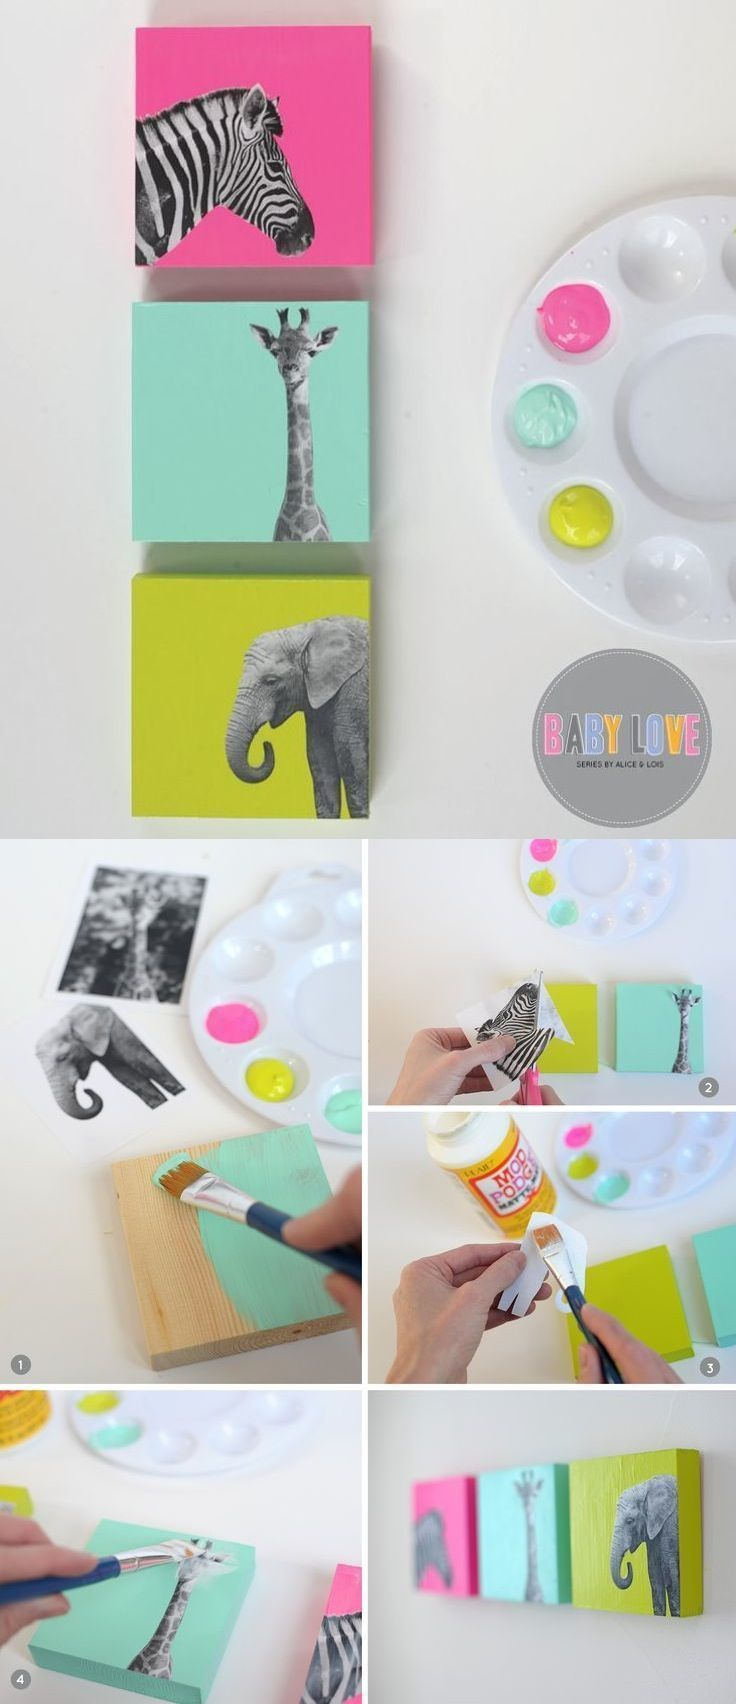 15 cutest diy projects you must finish creative room and room decor 15 cutest diy projects you must finish